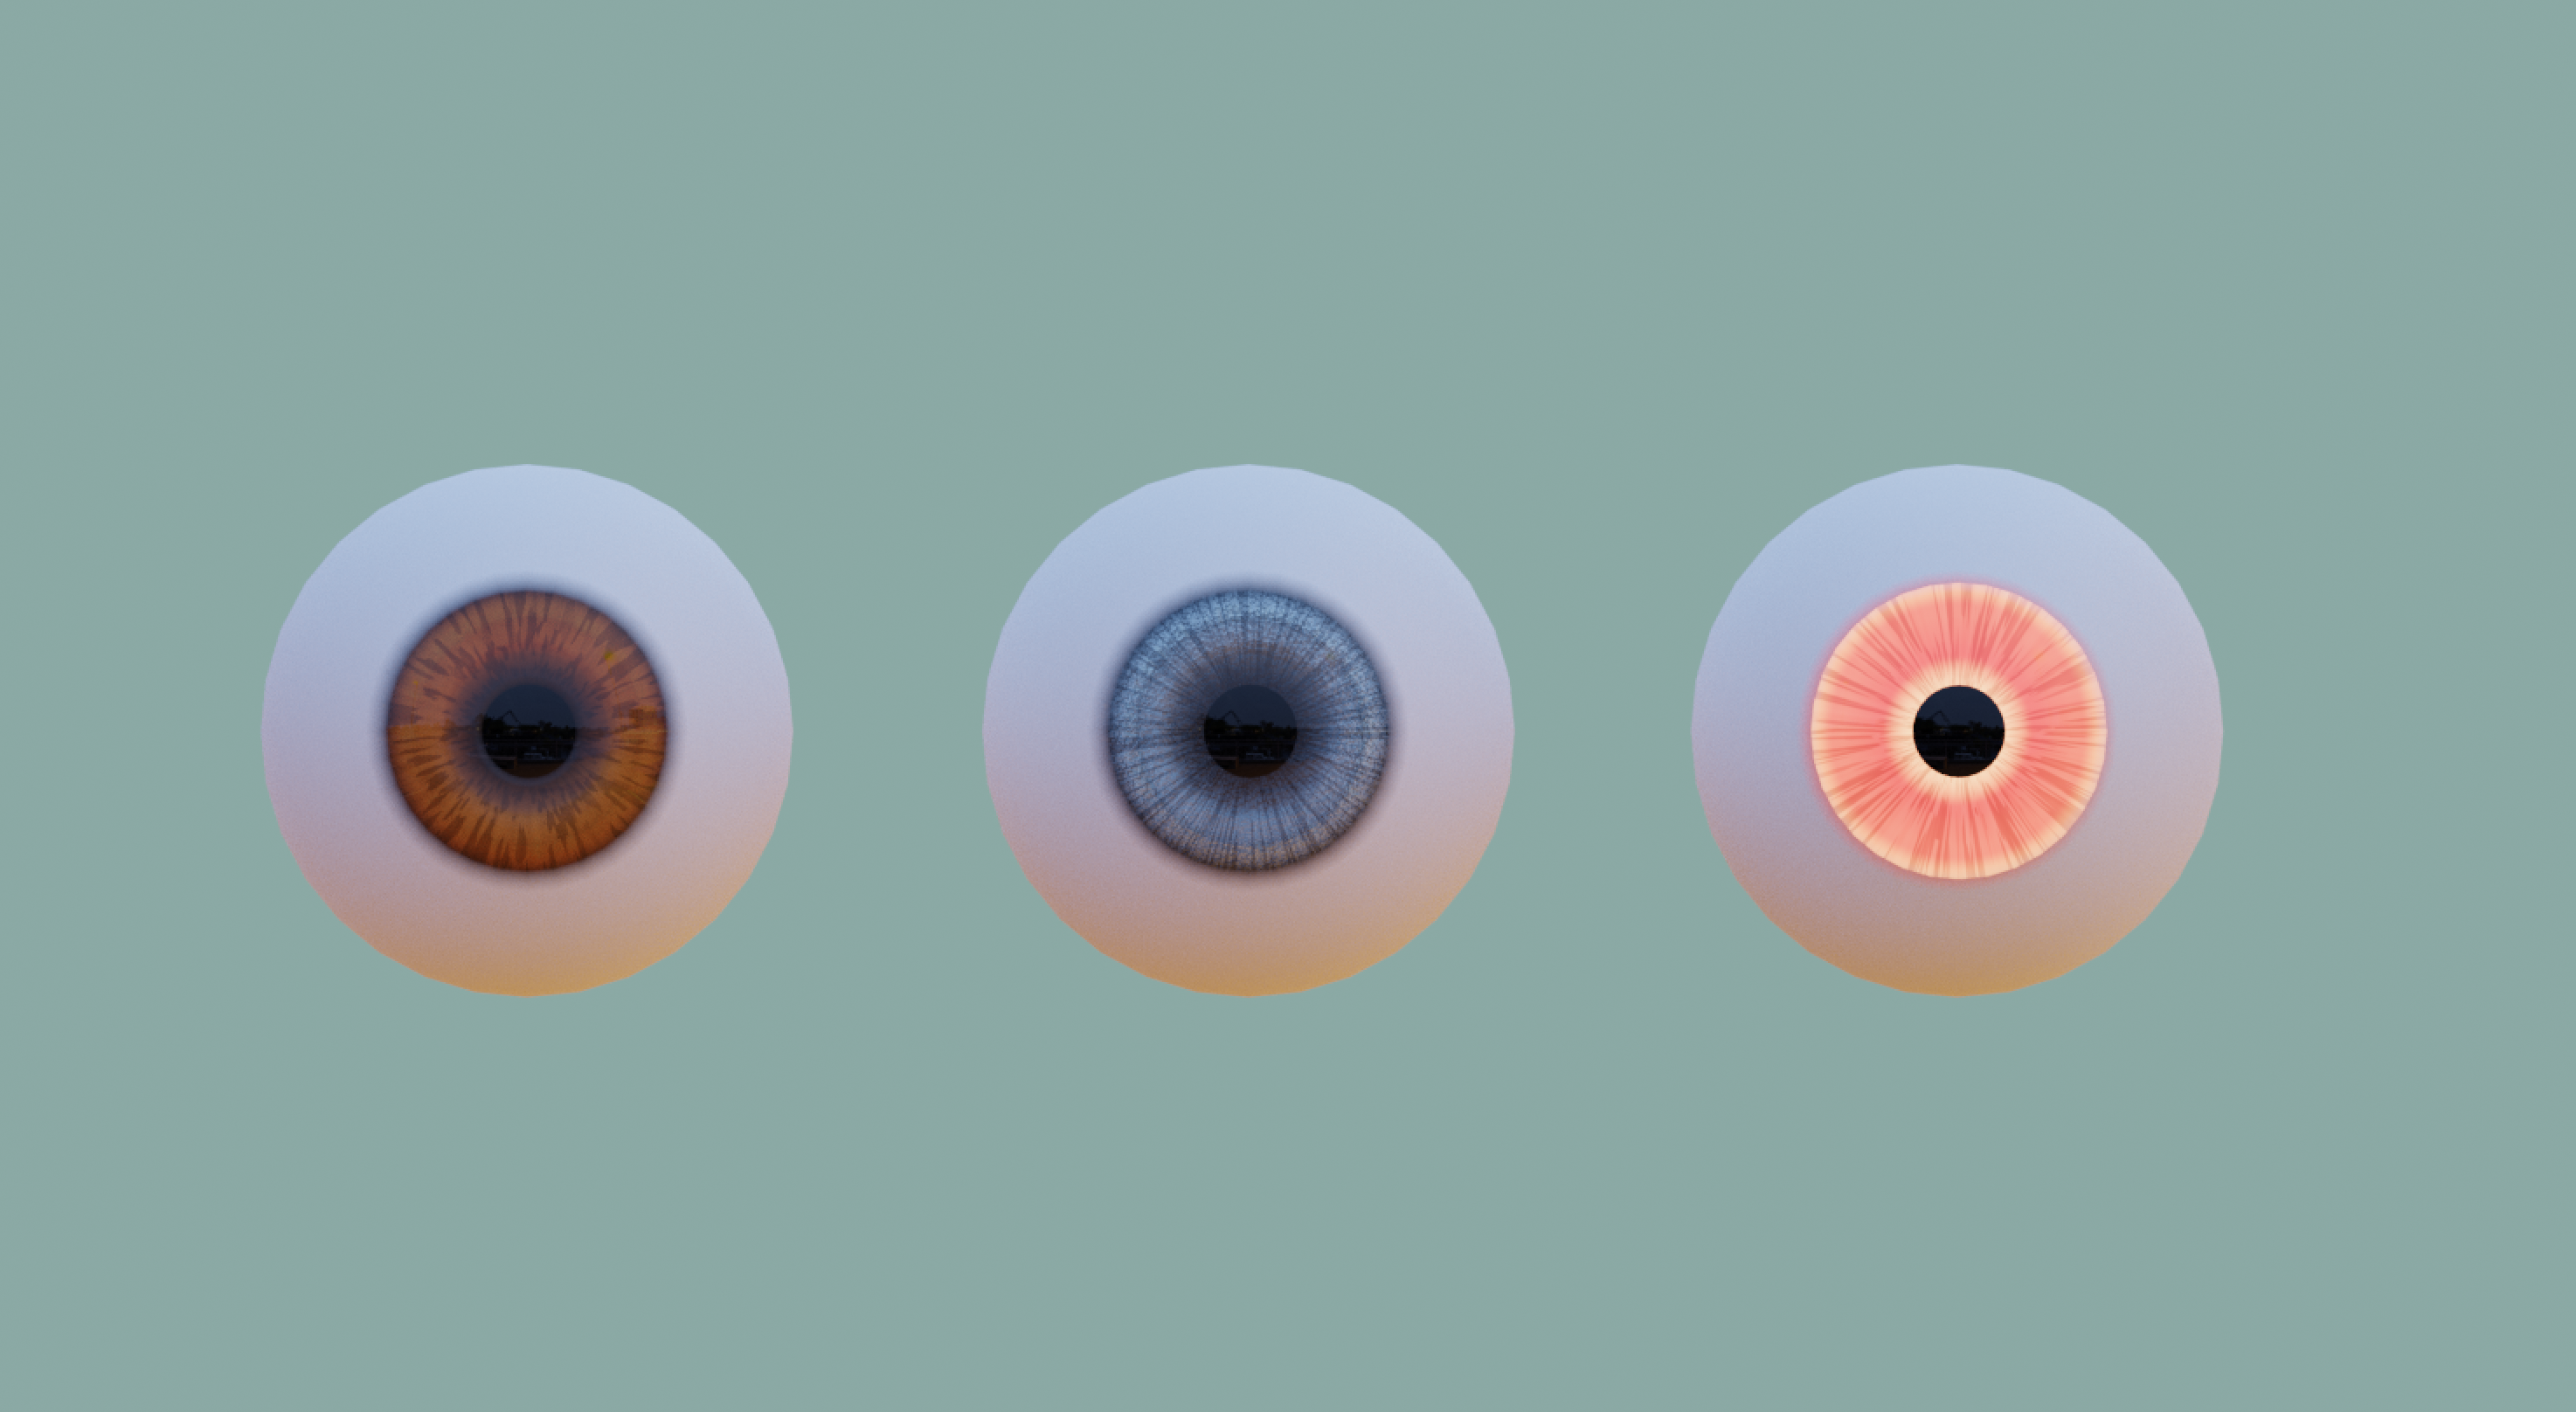 Cartoon // Real Eyes - Model and Materials preview image 1